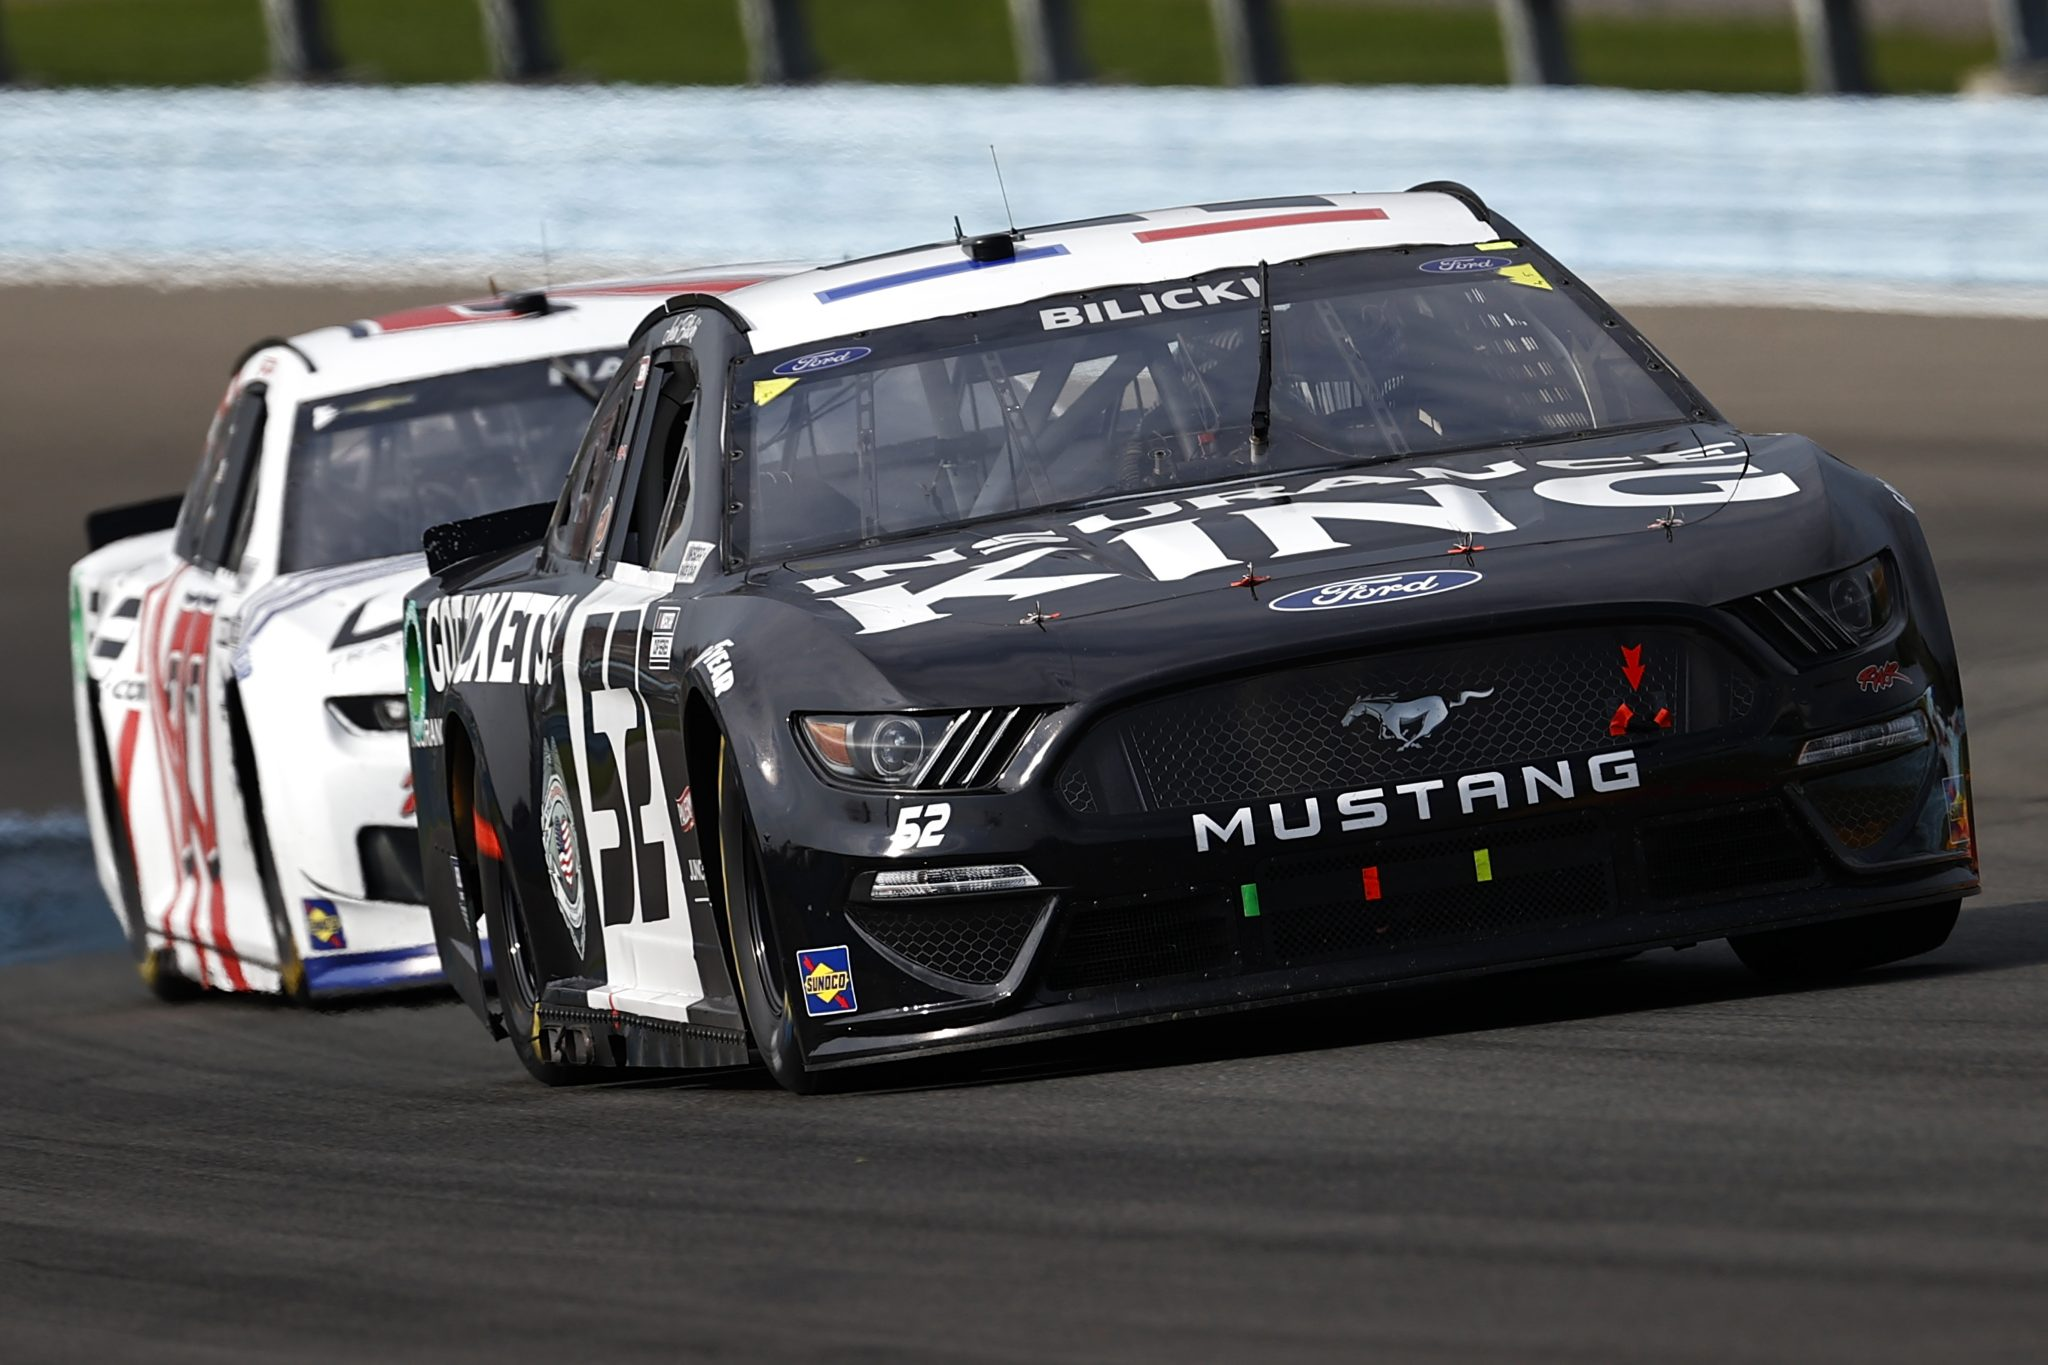 WATKINS GLEN, NEW YORK - AUGUST 08: Josh Bilicki, driver of the #52 Ford, drives during the NASCAR Cup Series Go Bowling at The Glen at Watkins Glen International on August 08, 2021 in Watkins Glen, New York. (Photo by Jared C. Tilton/Getty Images)   Getty Images